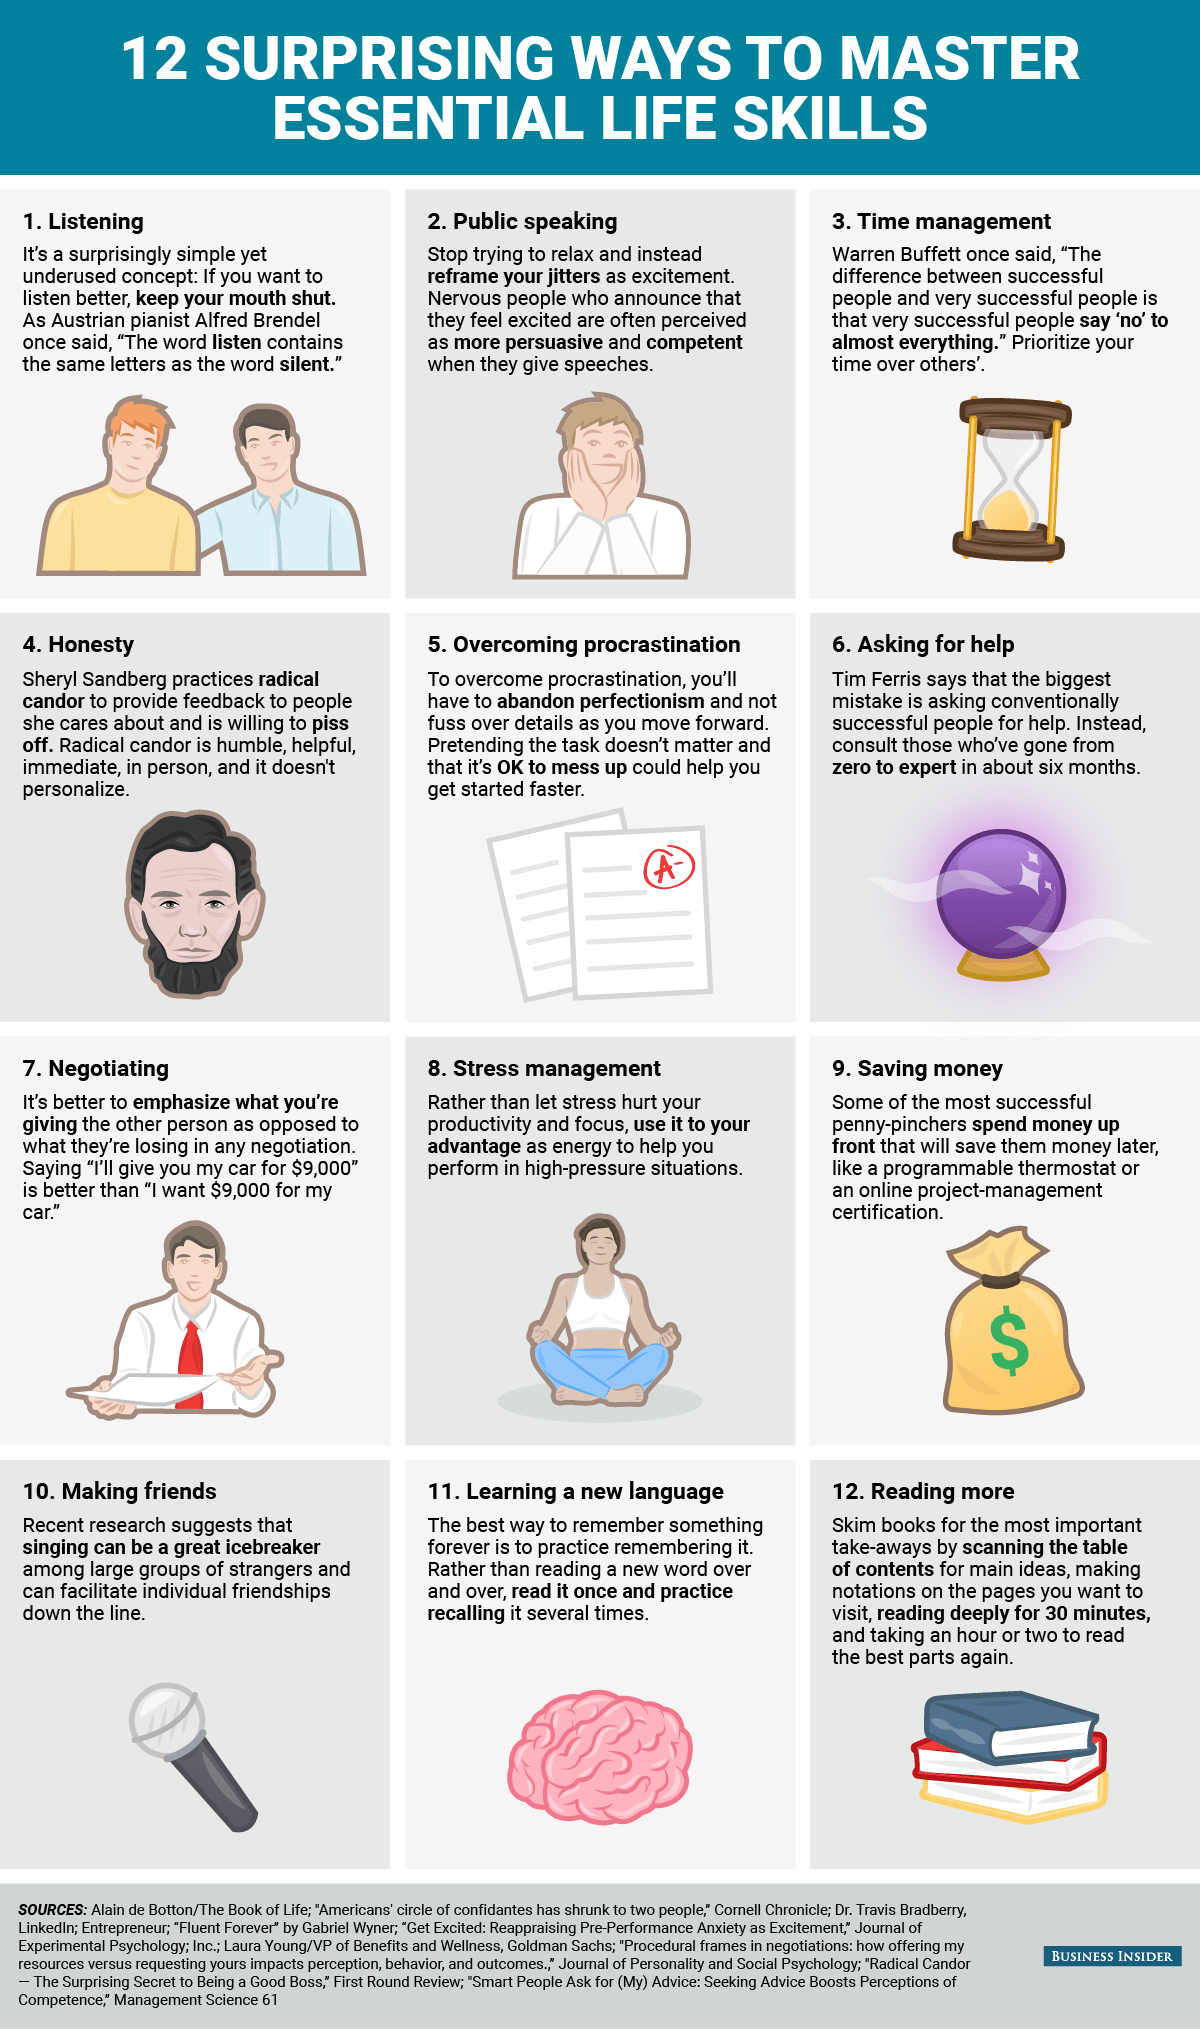 Surprising Ways To Master Essential Life Skills